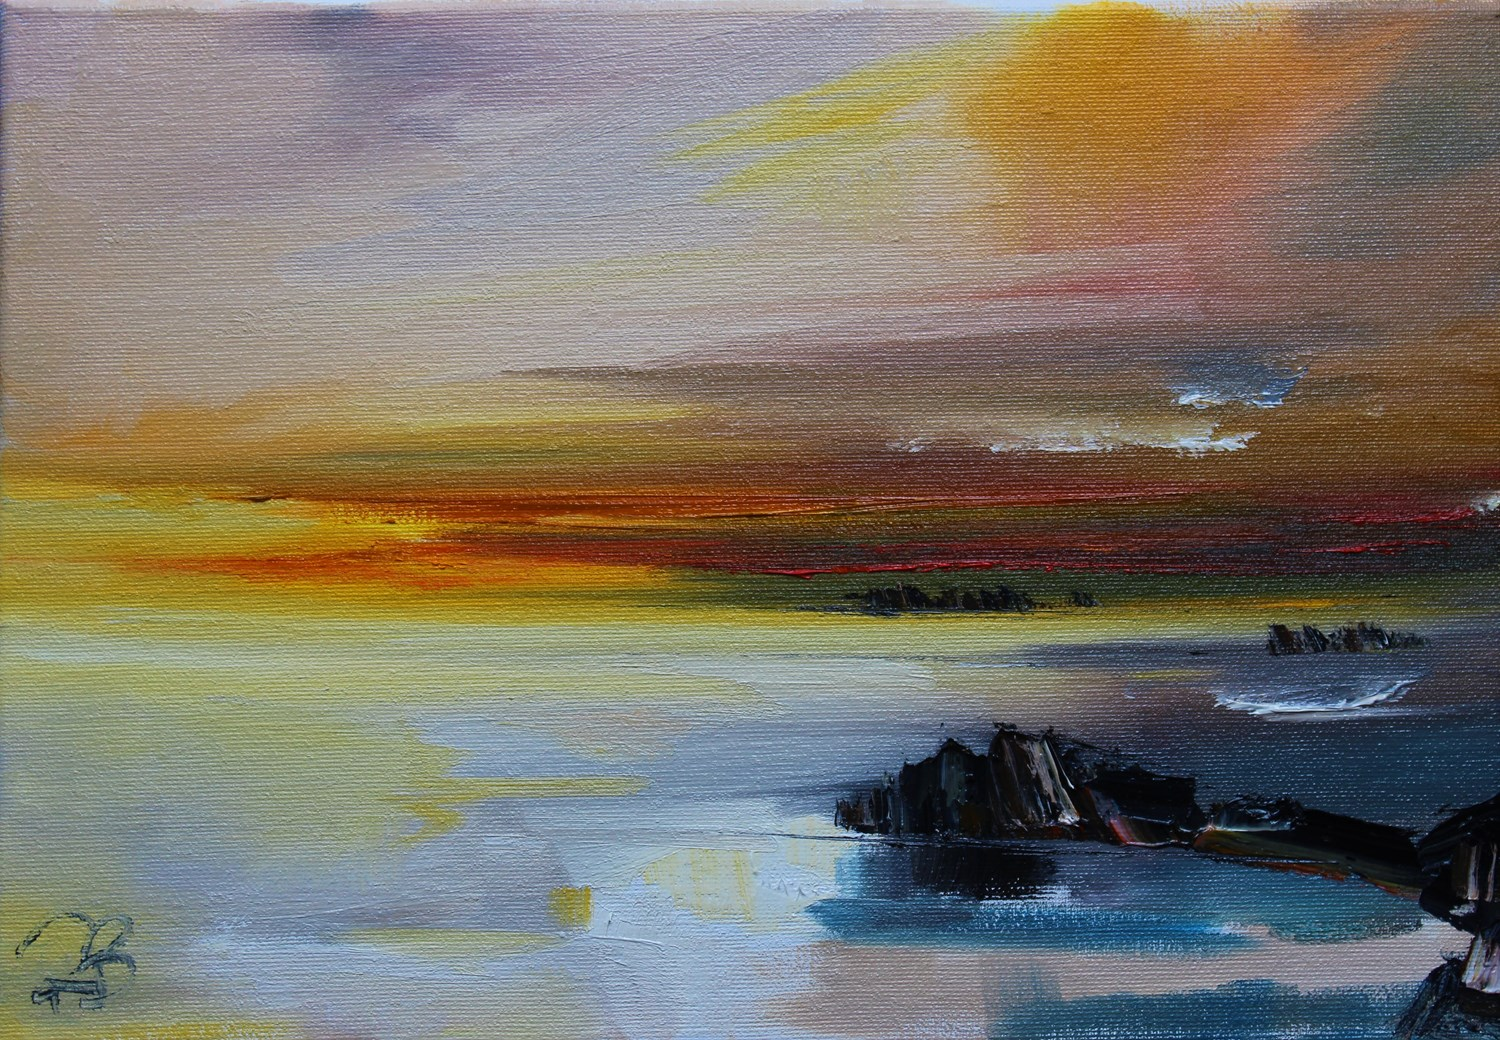 'Pool reflections' by artist Rosanne Barr